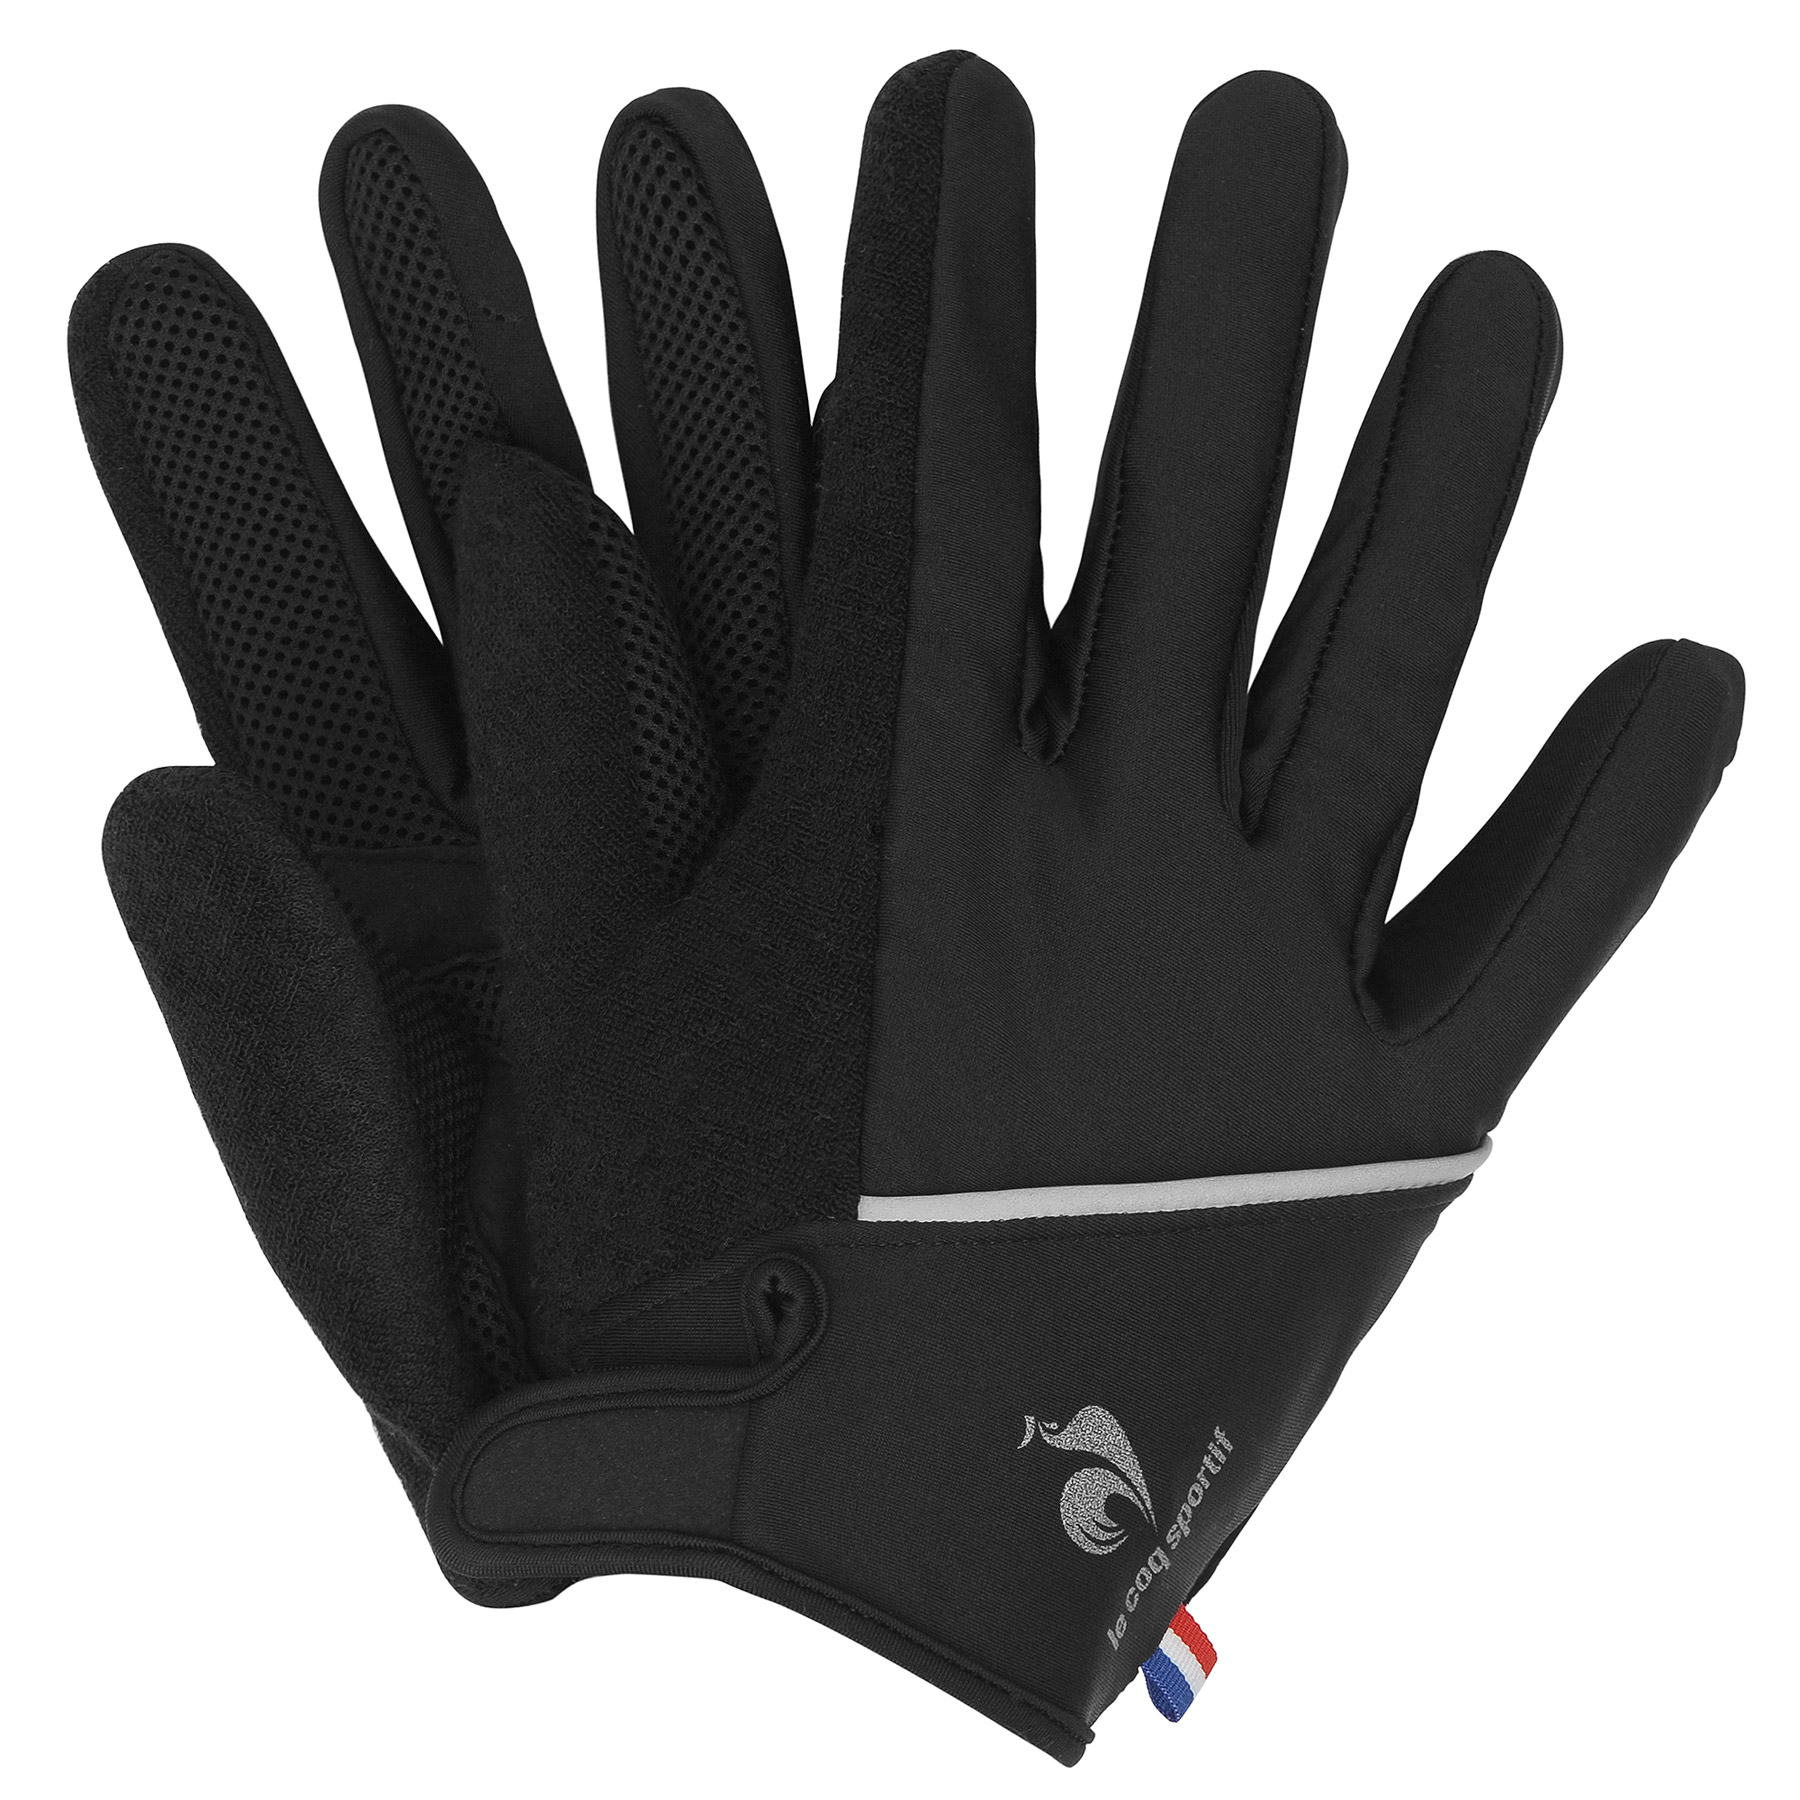 Le Coq Sportif Resson Gloves